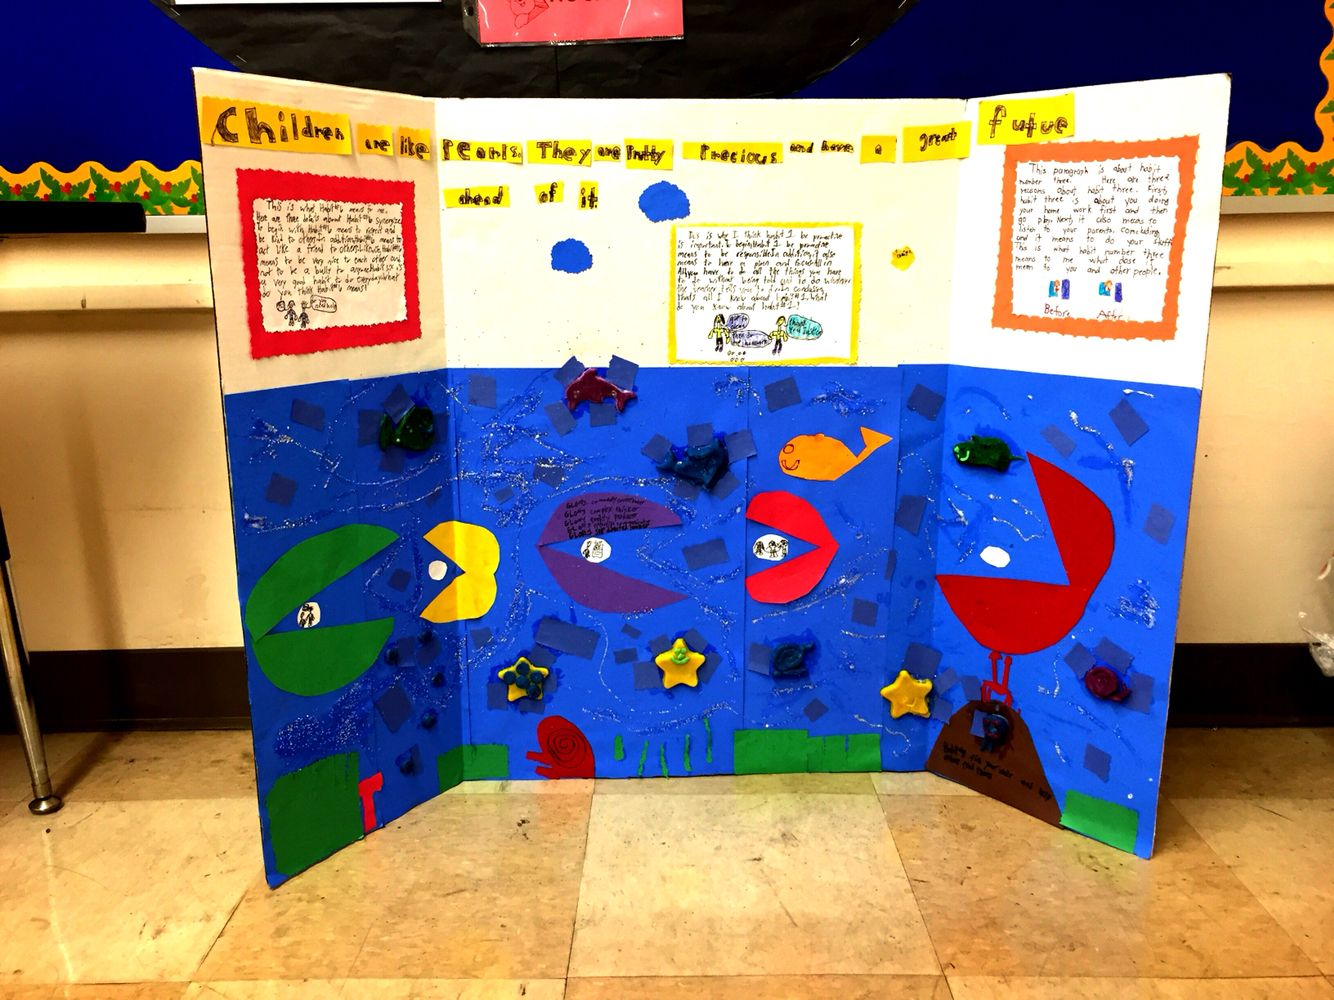 Sean Covey 7 Habits Inspired Paragraph Writing Boards For